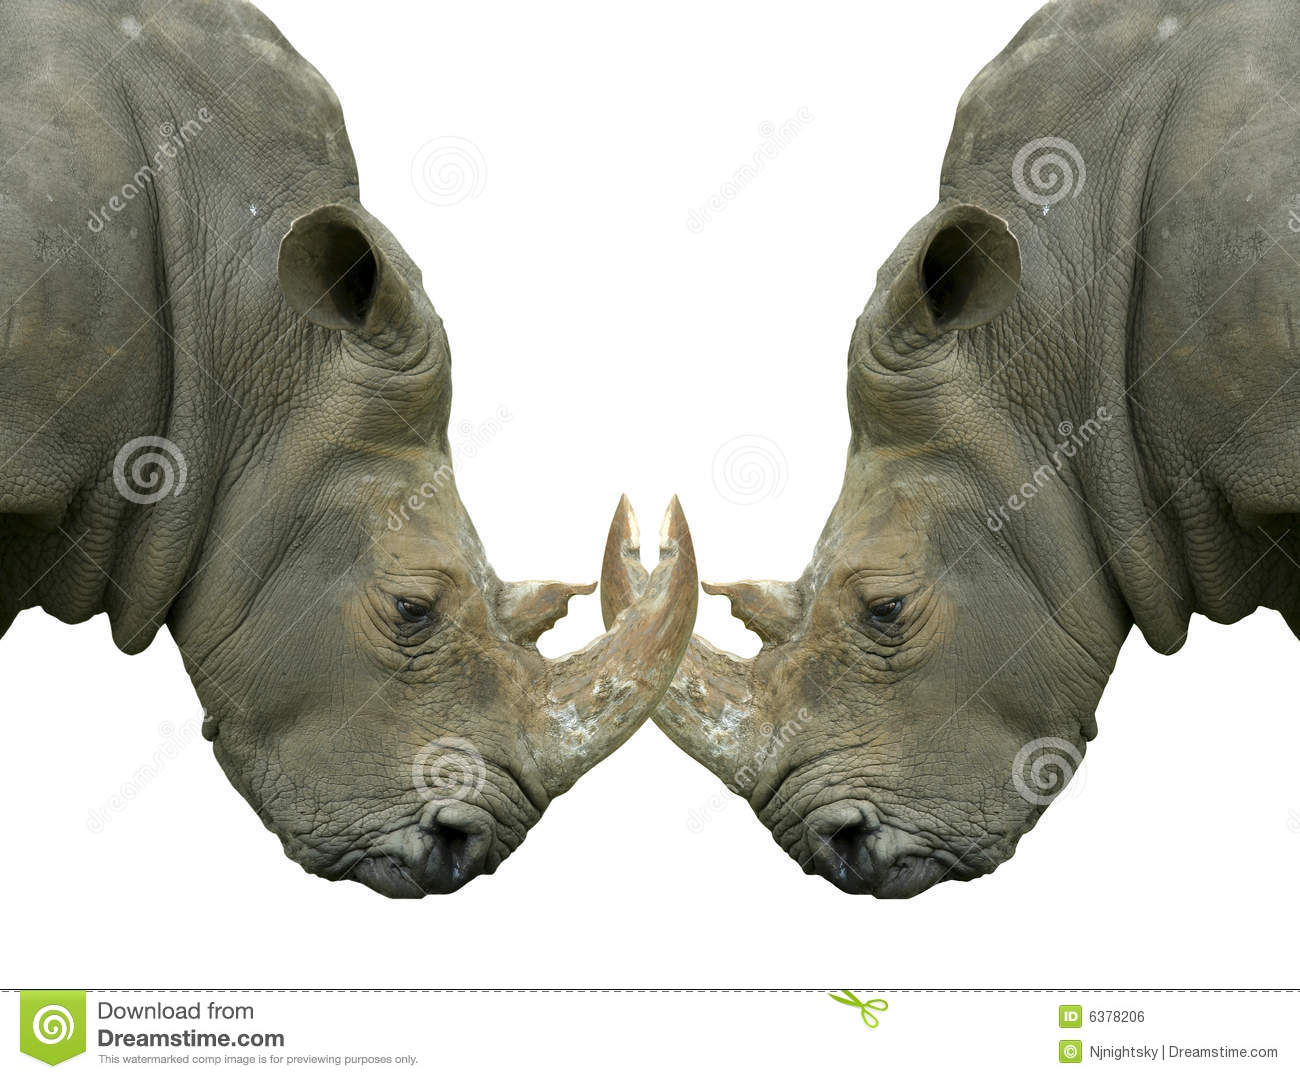 Isolated dueling Rhinos with locked horns